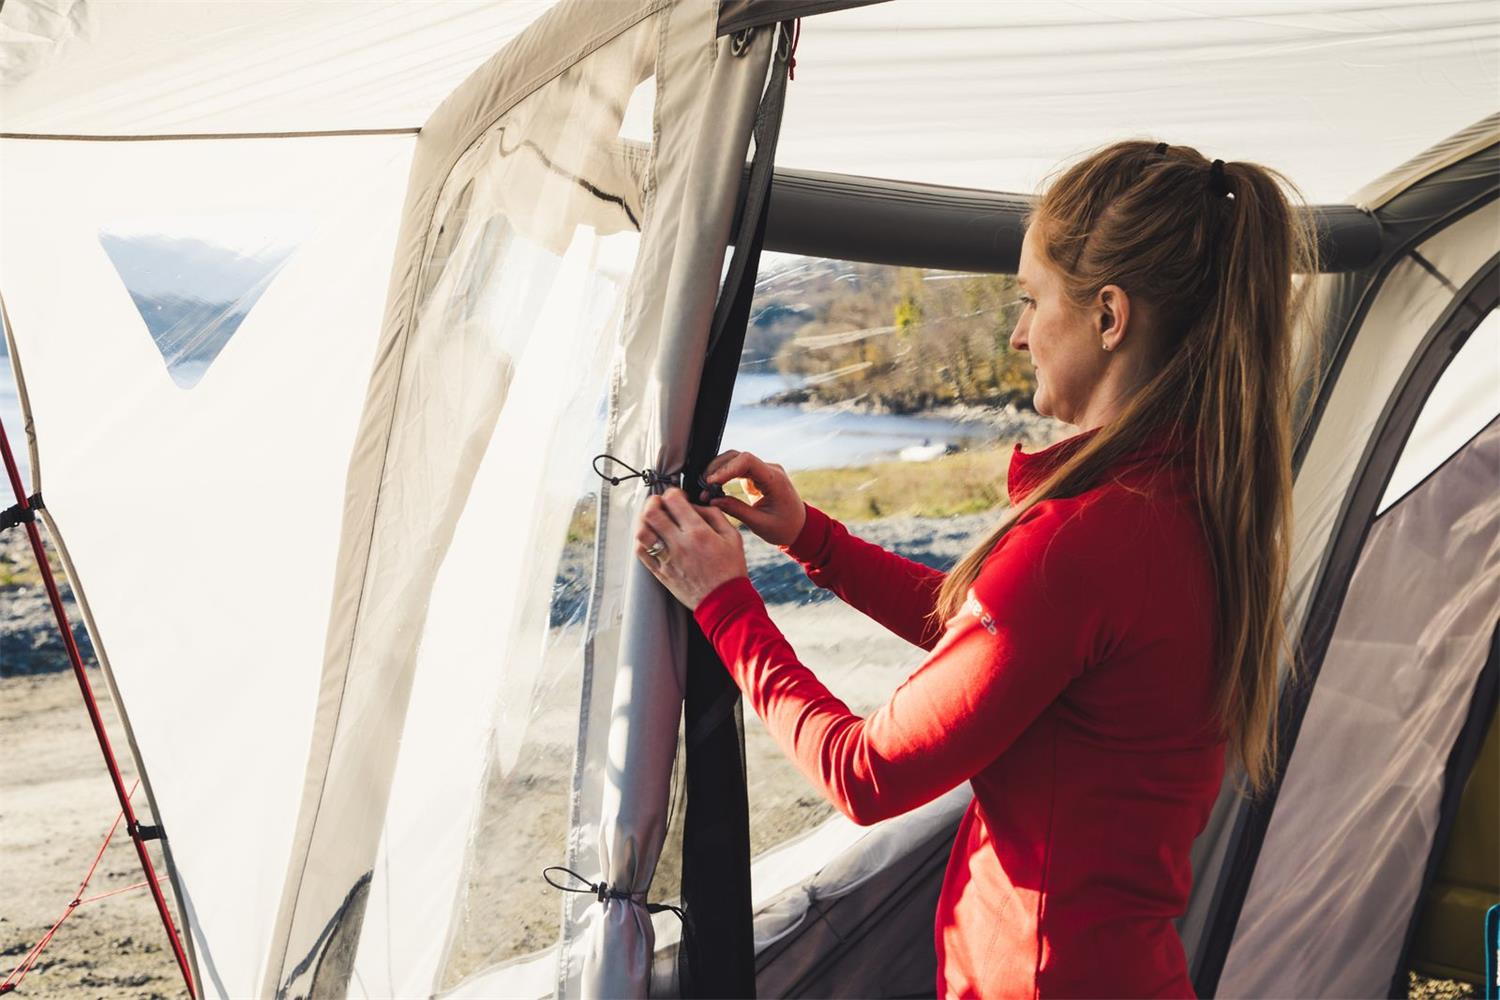 Relax and watch the hours go by in the Vango Tolga VW driveaway awning.